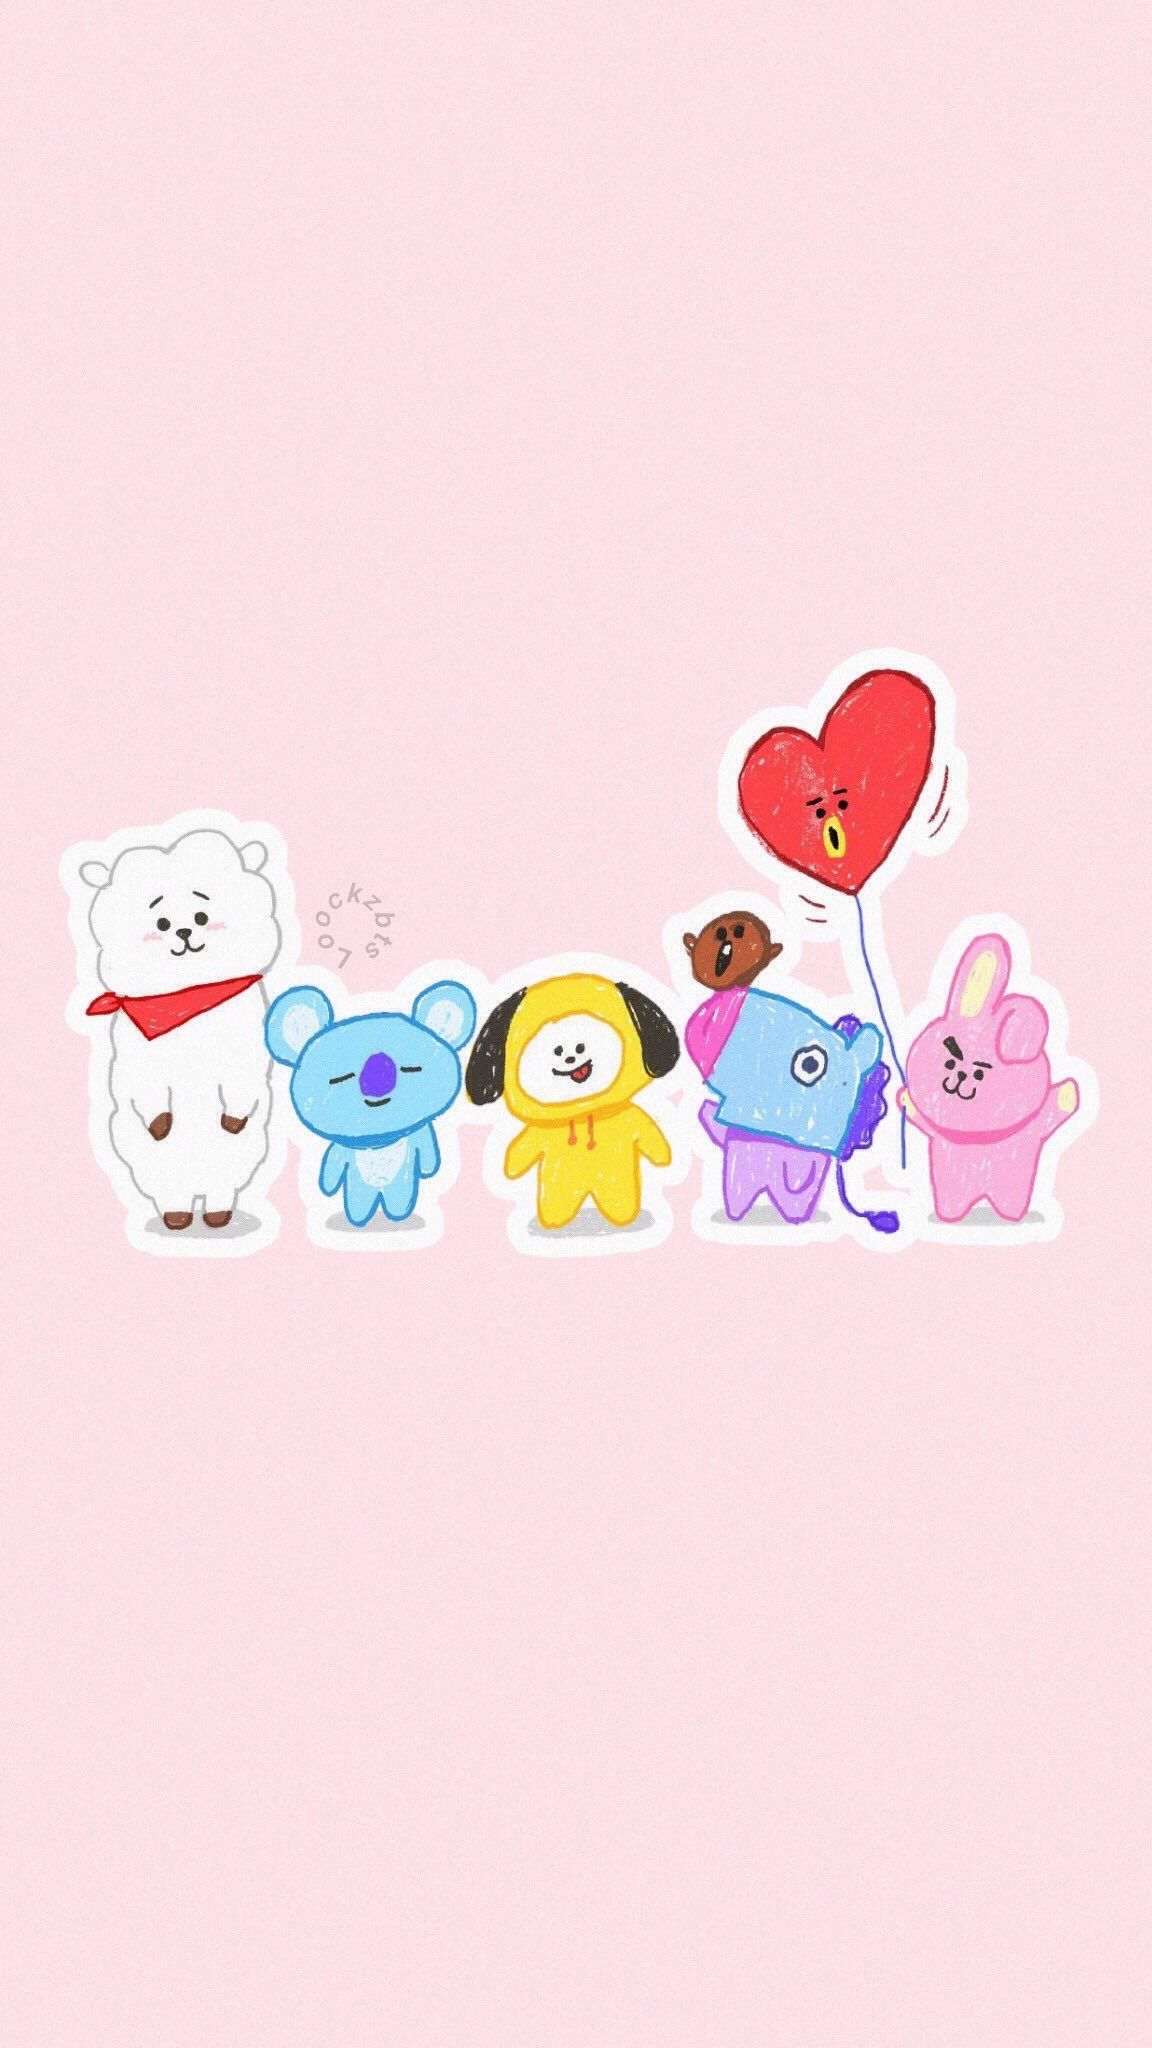 bts bt21 BTS love Pinterest BTS Wallpaper 1152x2048